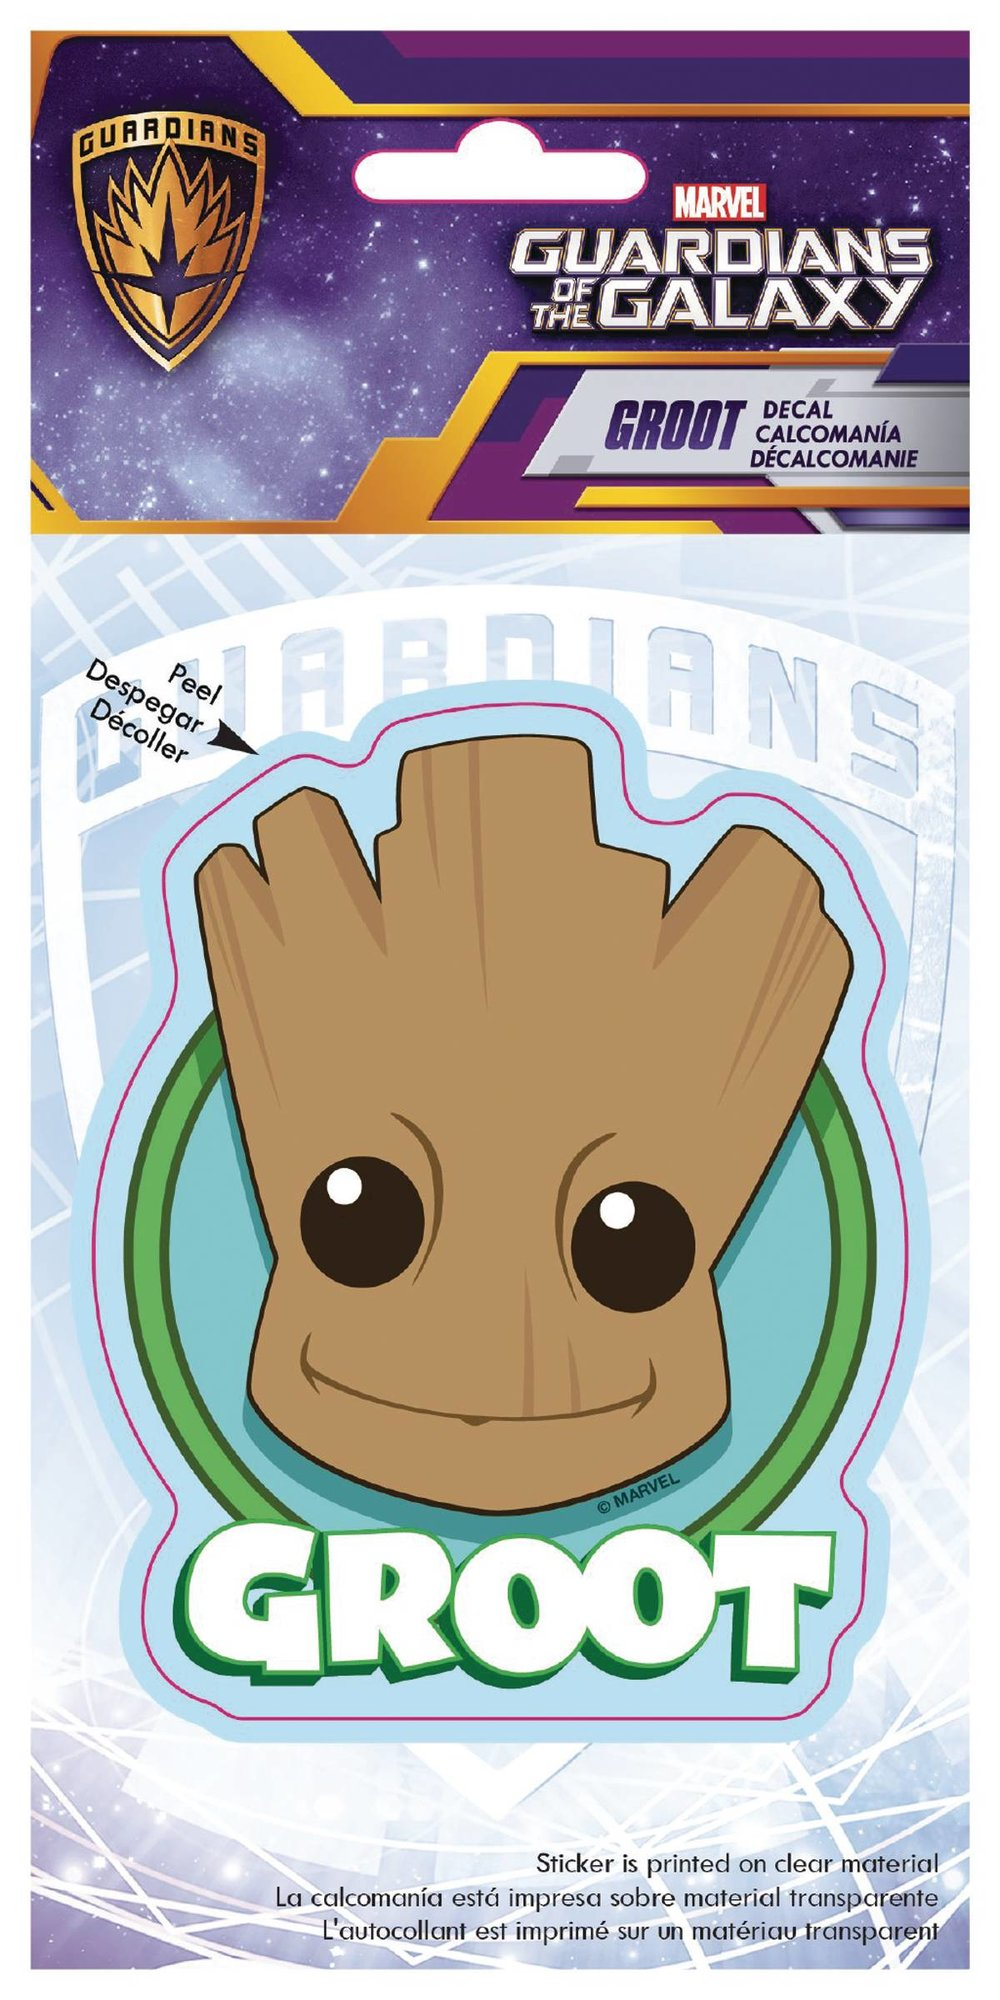 GUARDIANS OF THE GALAXY VOL2 GROOT CUTE HEAD DECAL.jpg